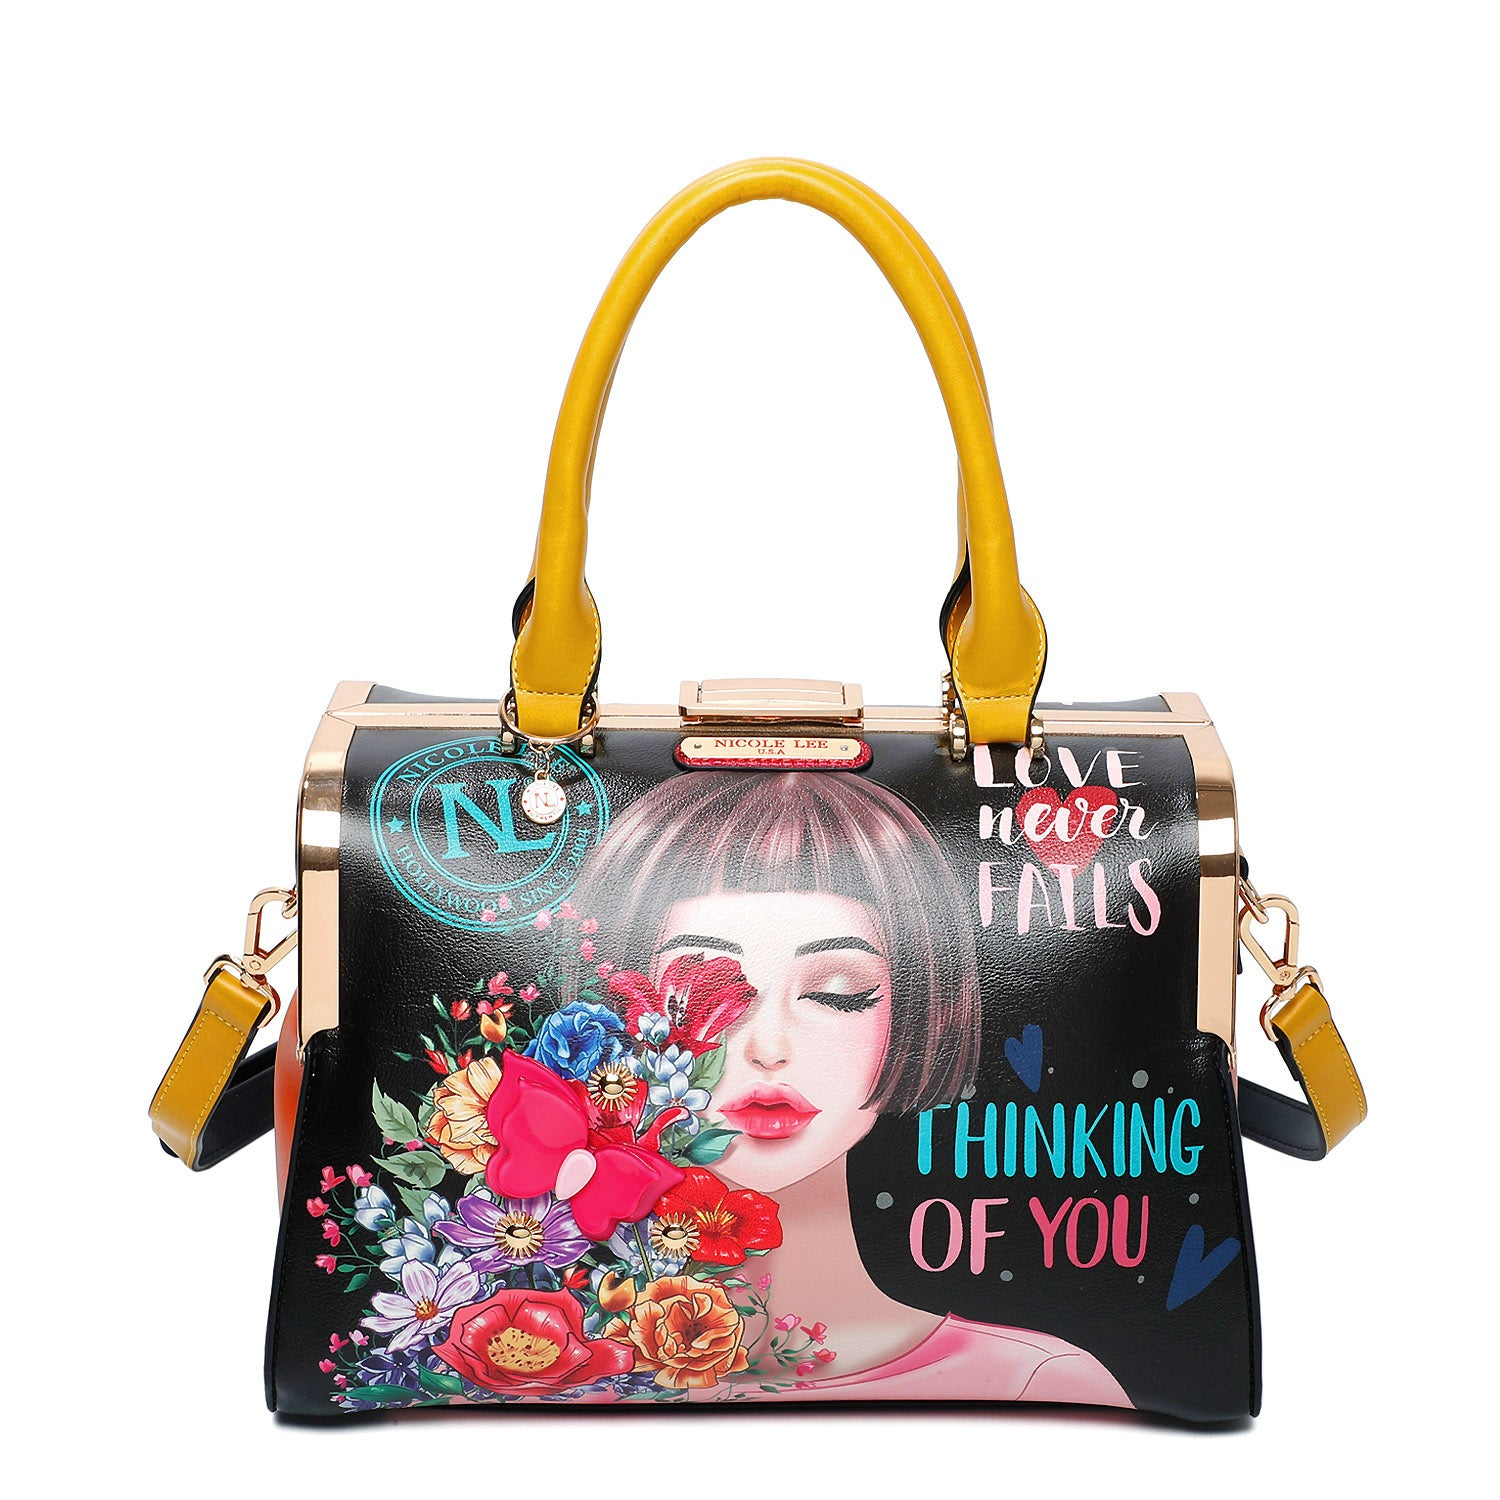 THINKING OF YOU CHIC SQUARED FRAME BAG